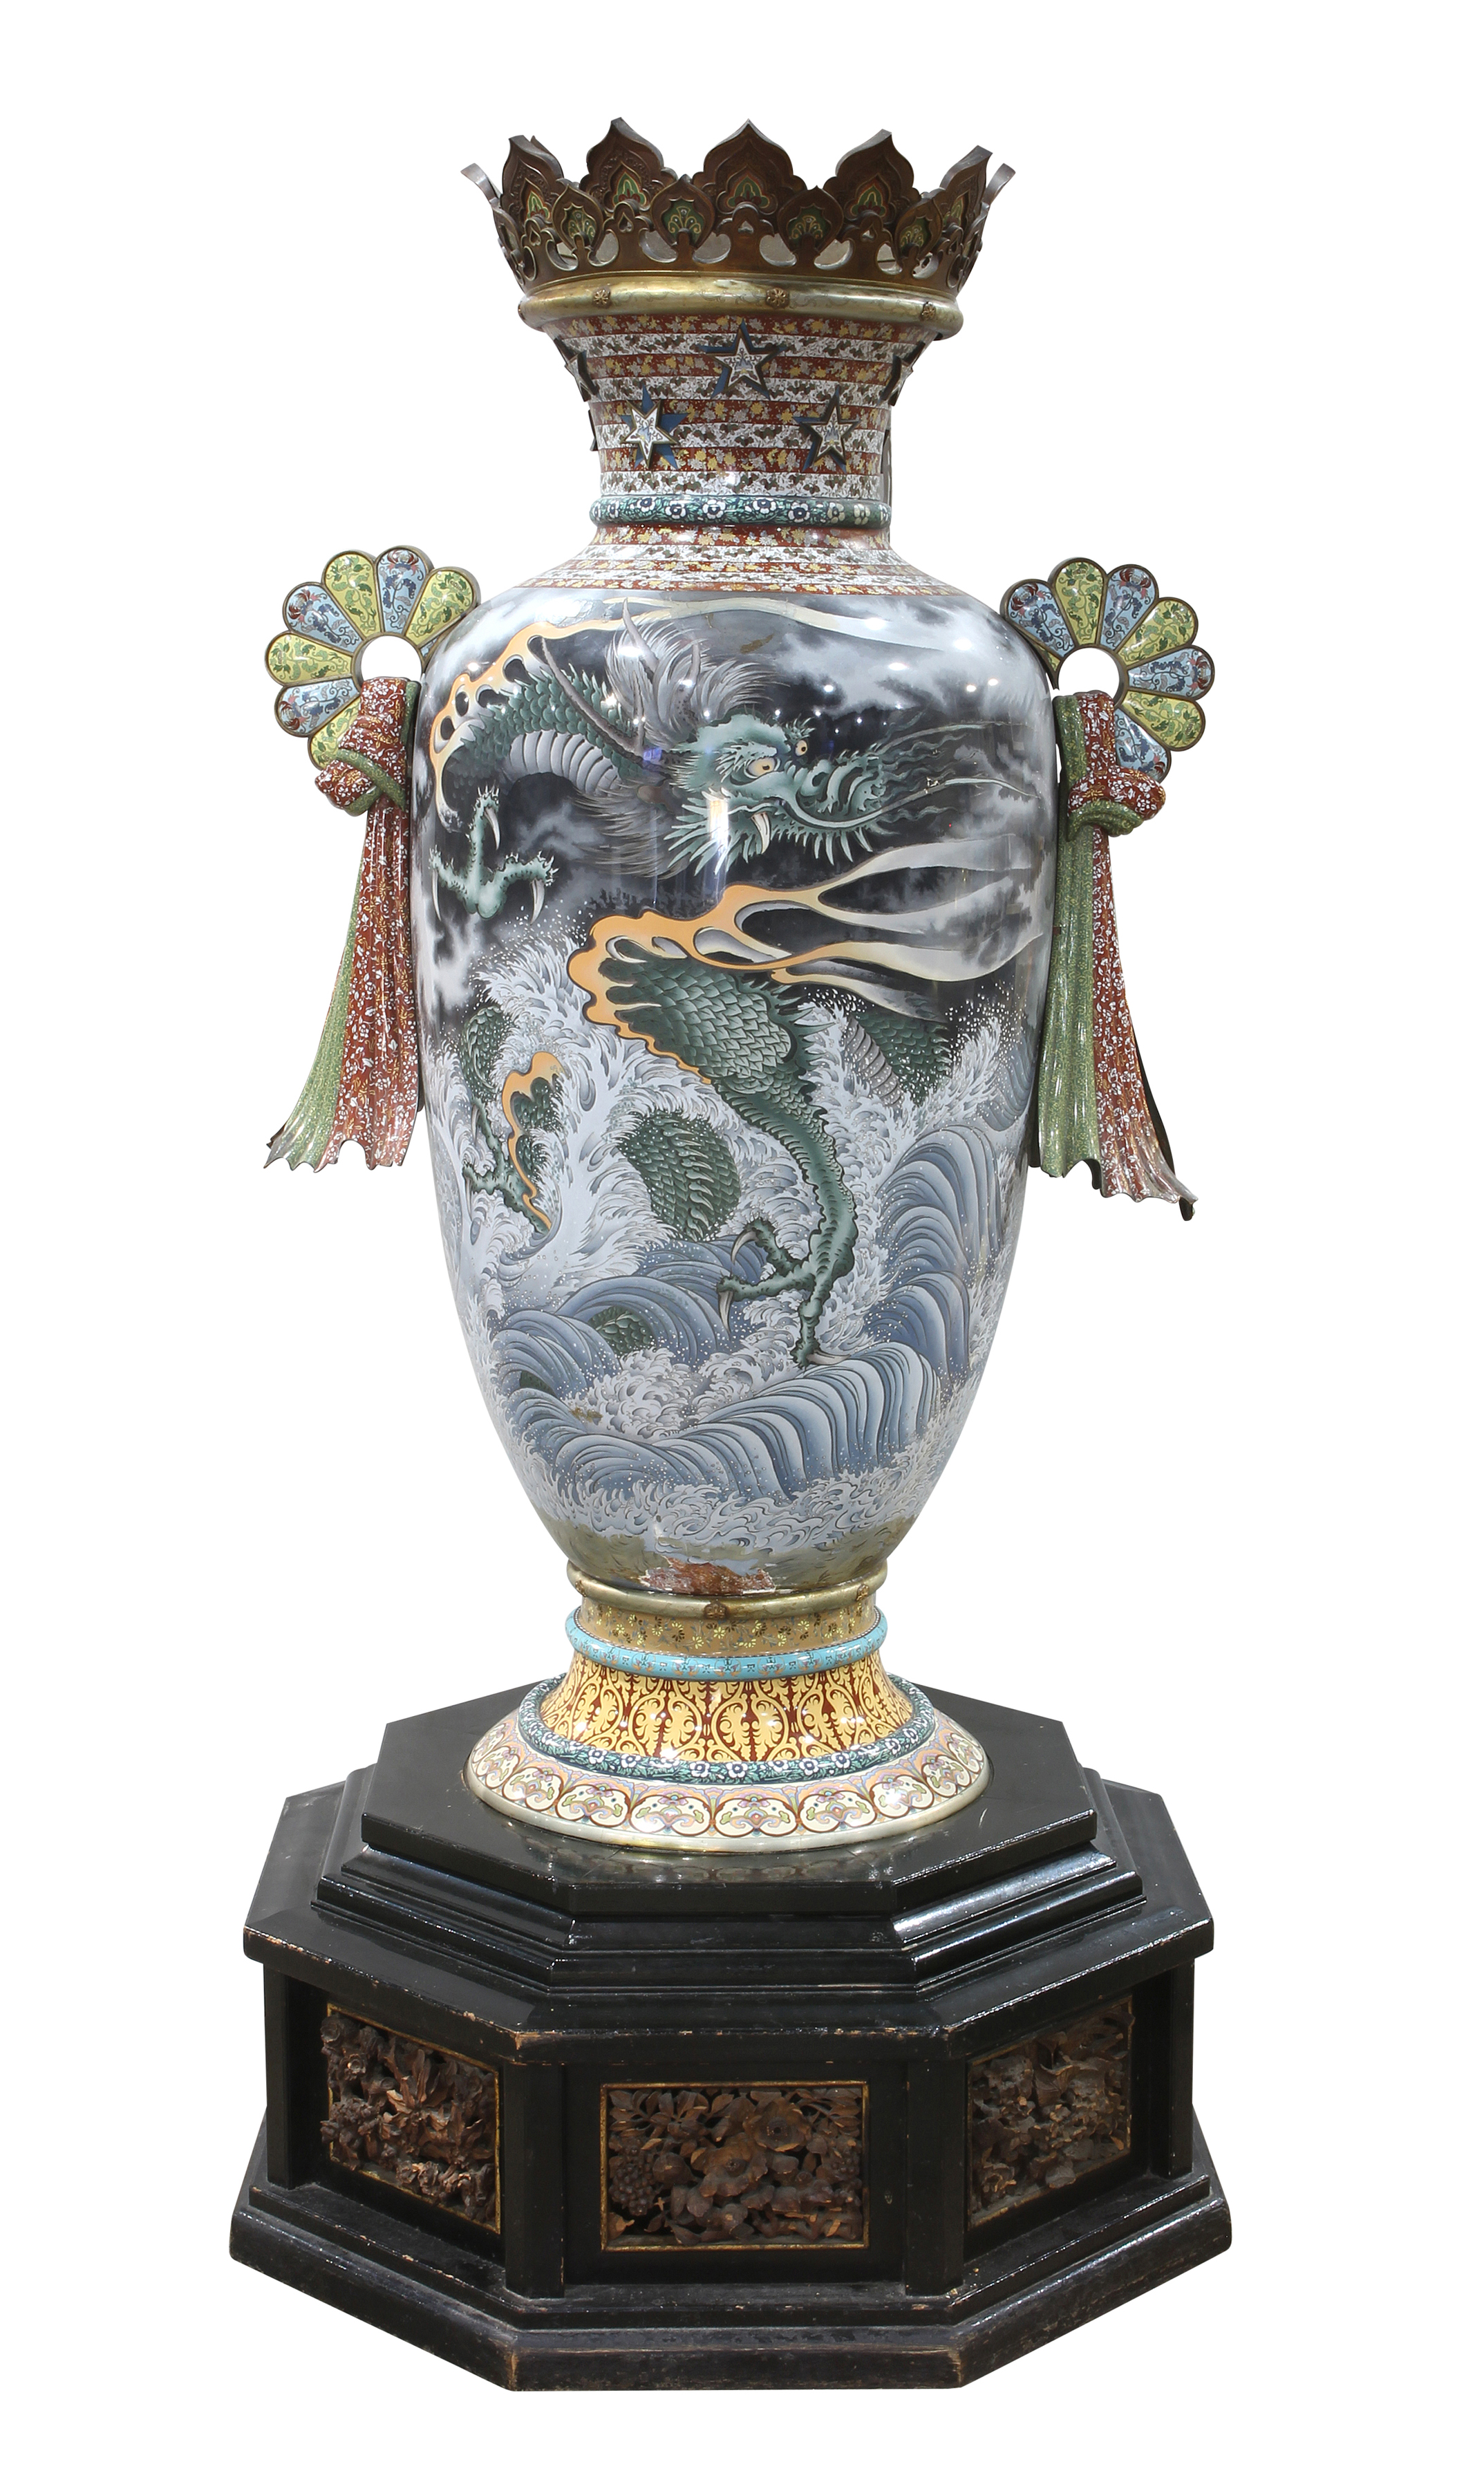 "Huge Japanese urn ""lost"" for 100 years and found in fish restaurant sells big"